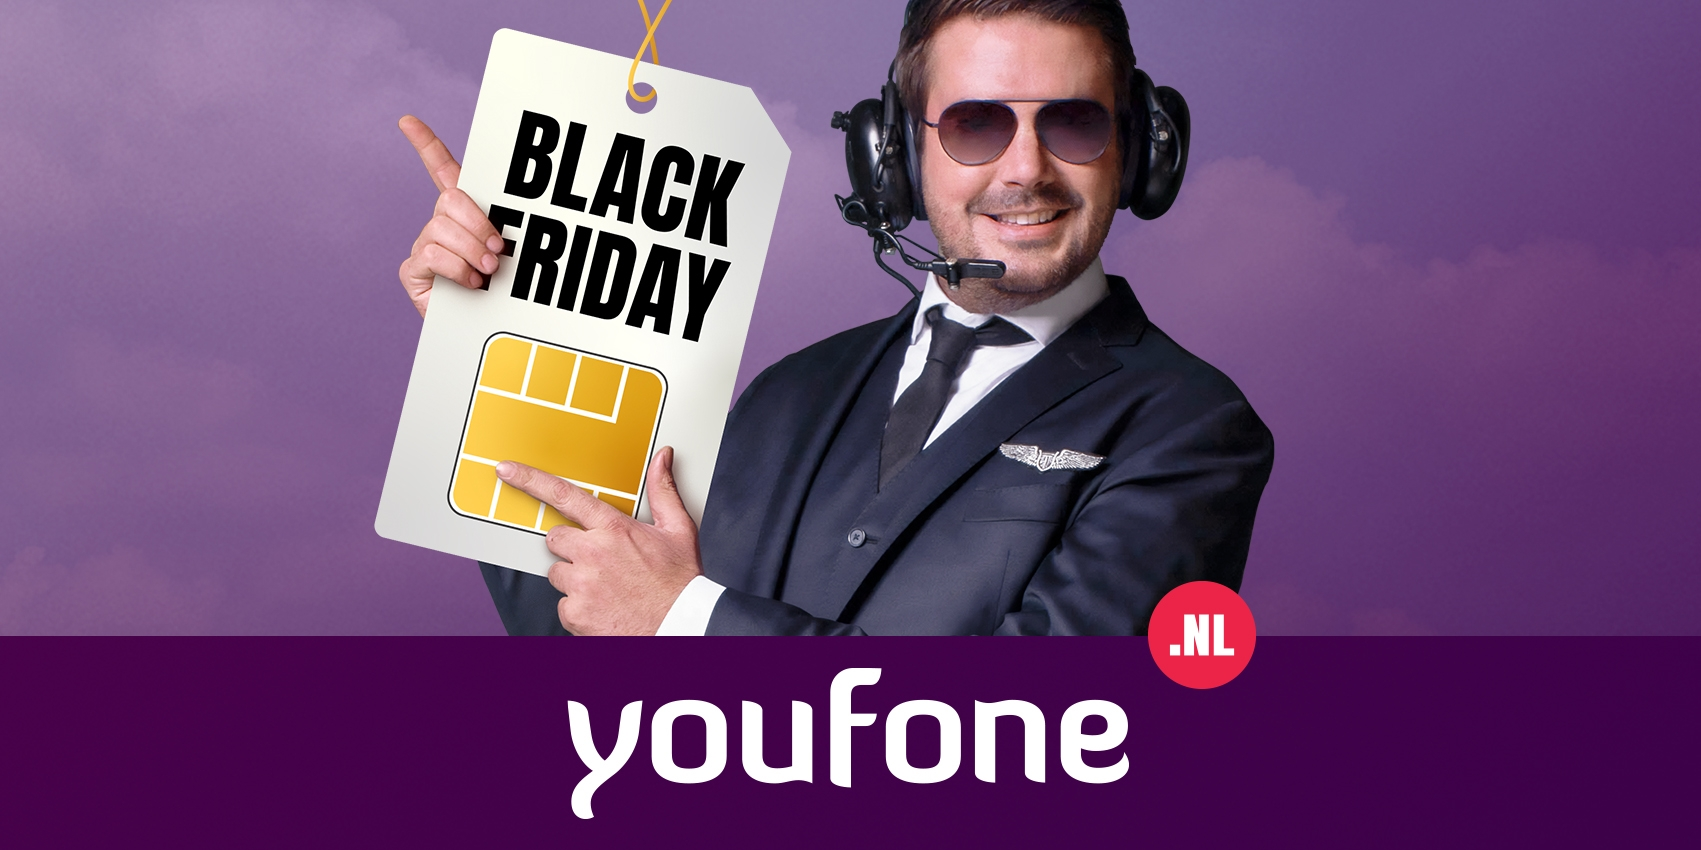 Youfone Black Friday campagne